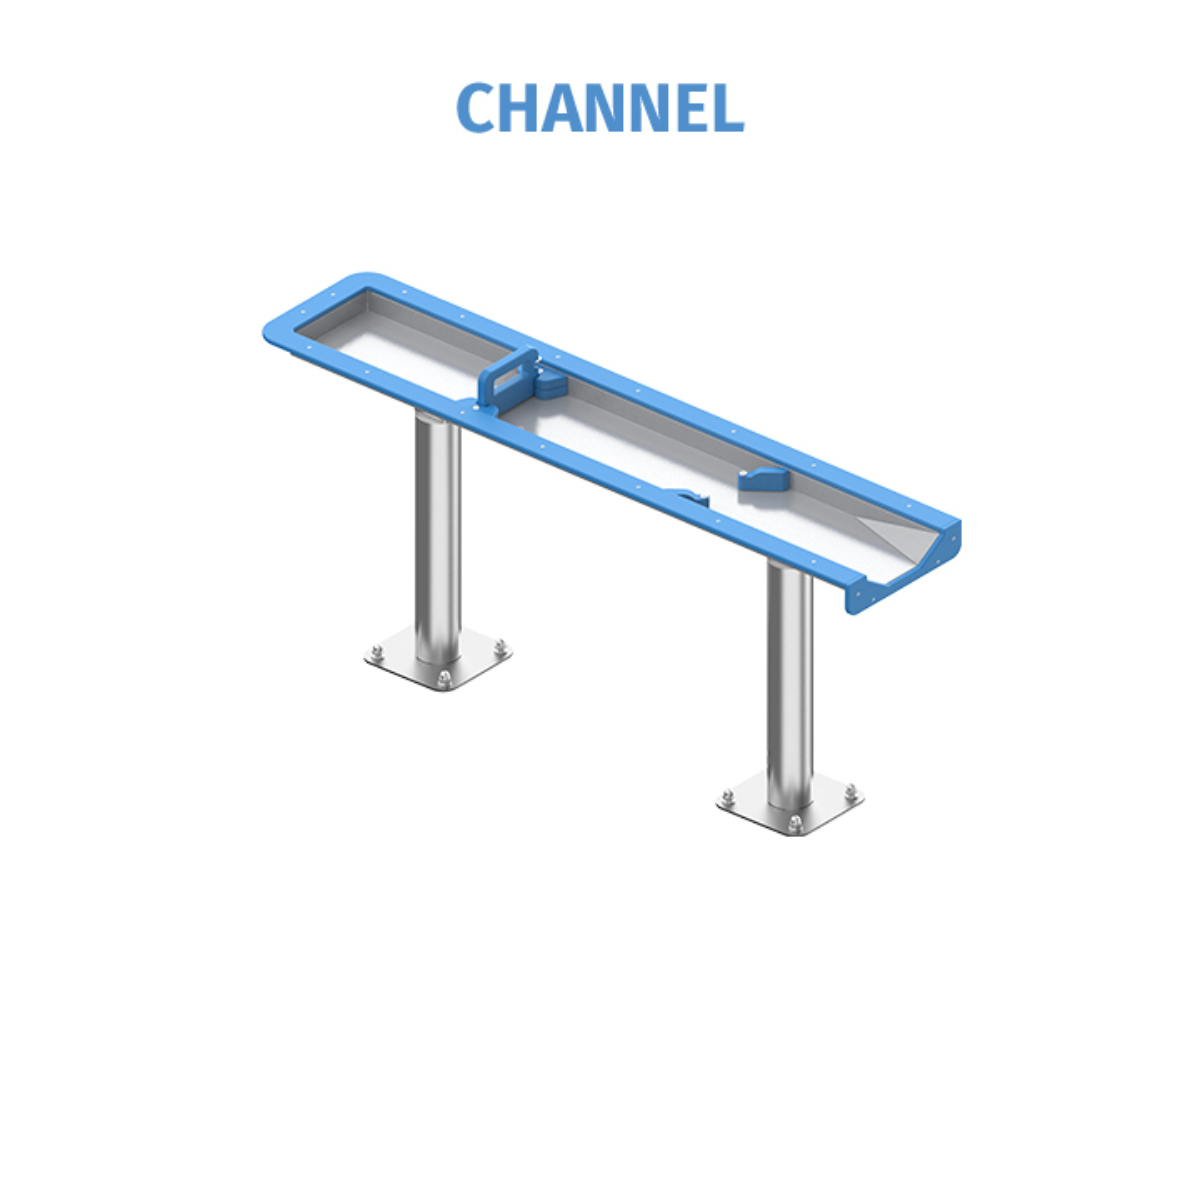 570 Channel